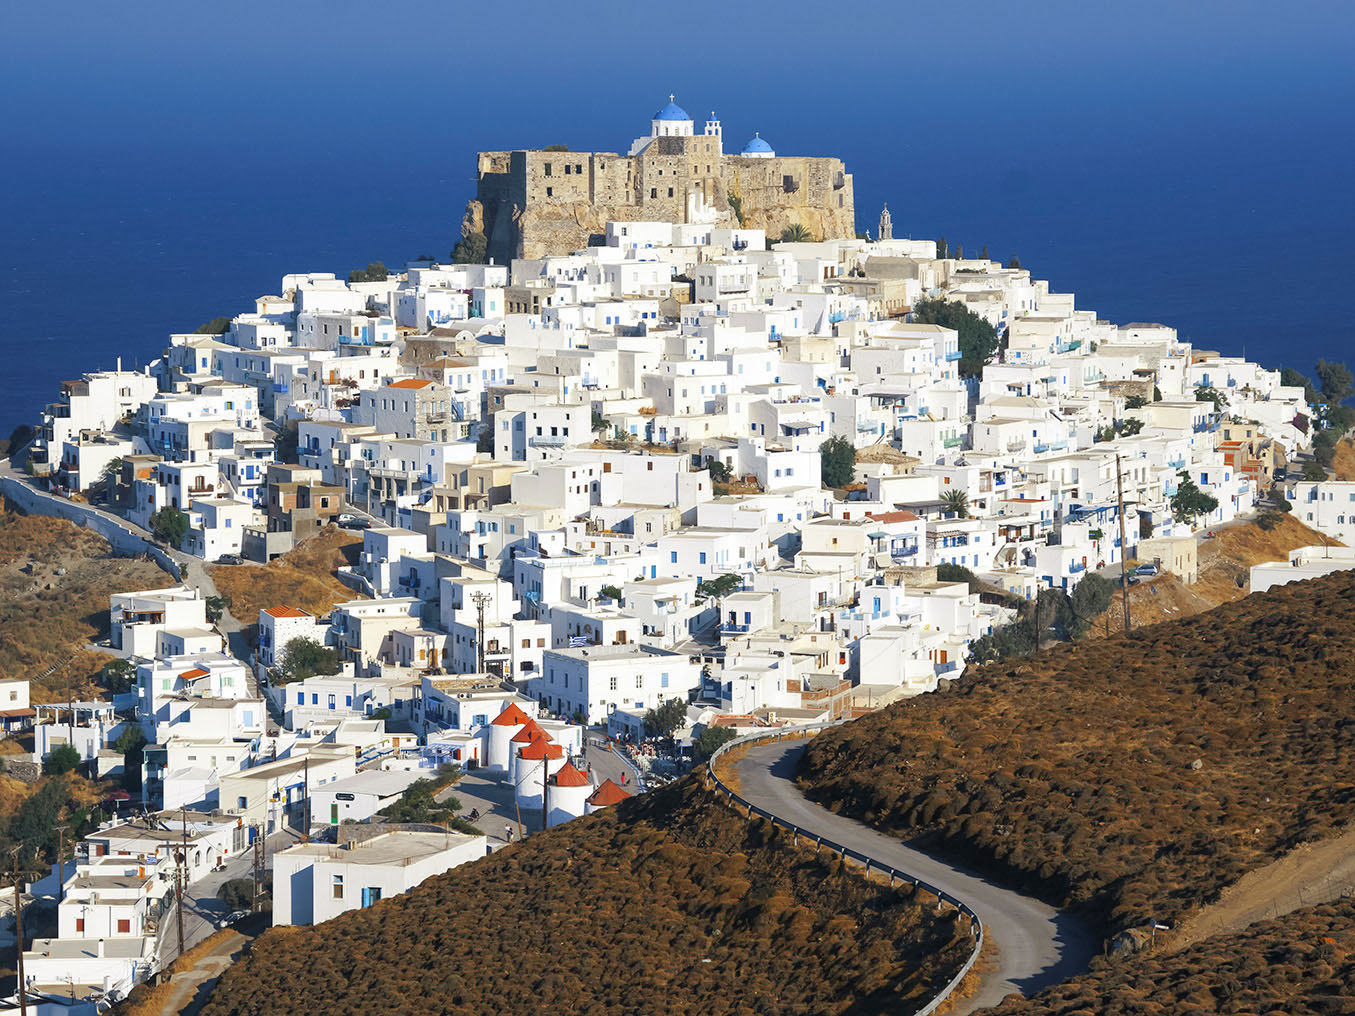 astypalaia   a beautiful island in the aegean sea